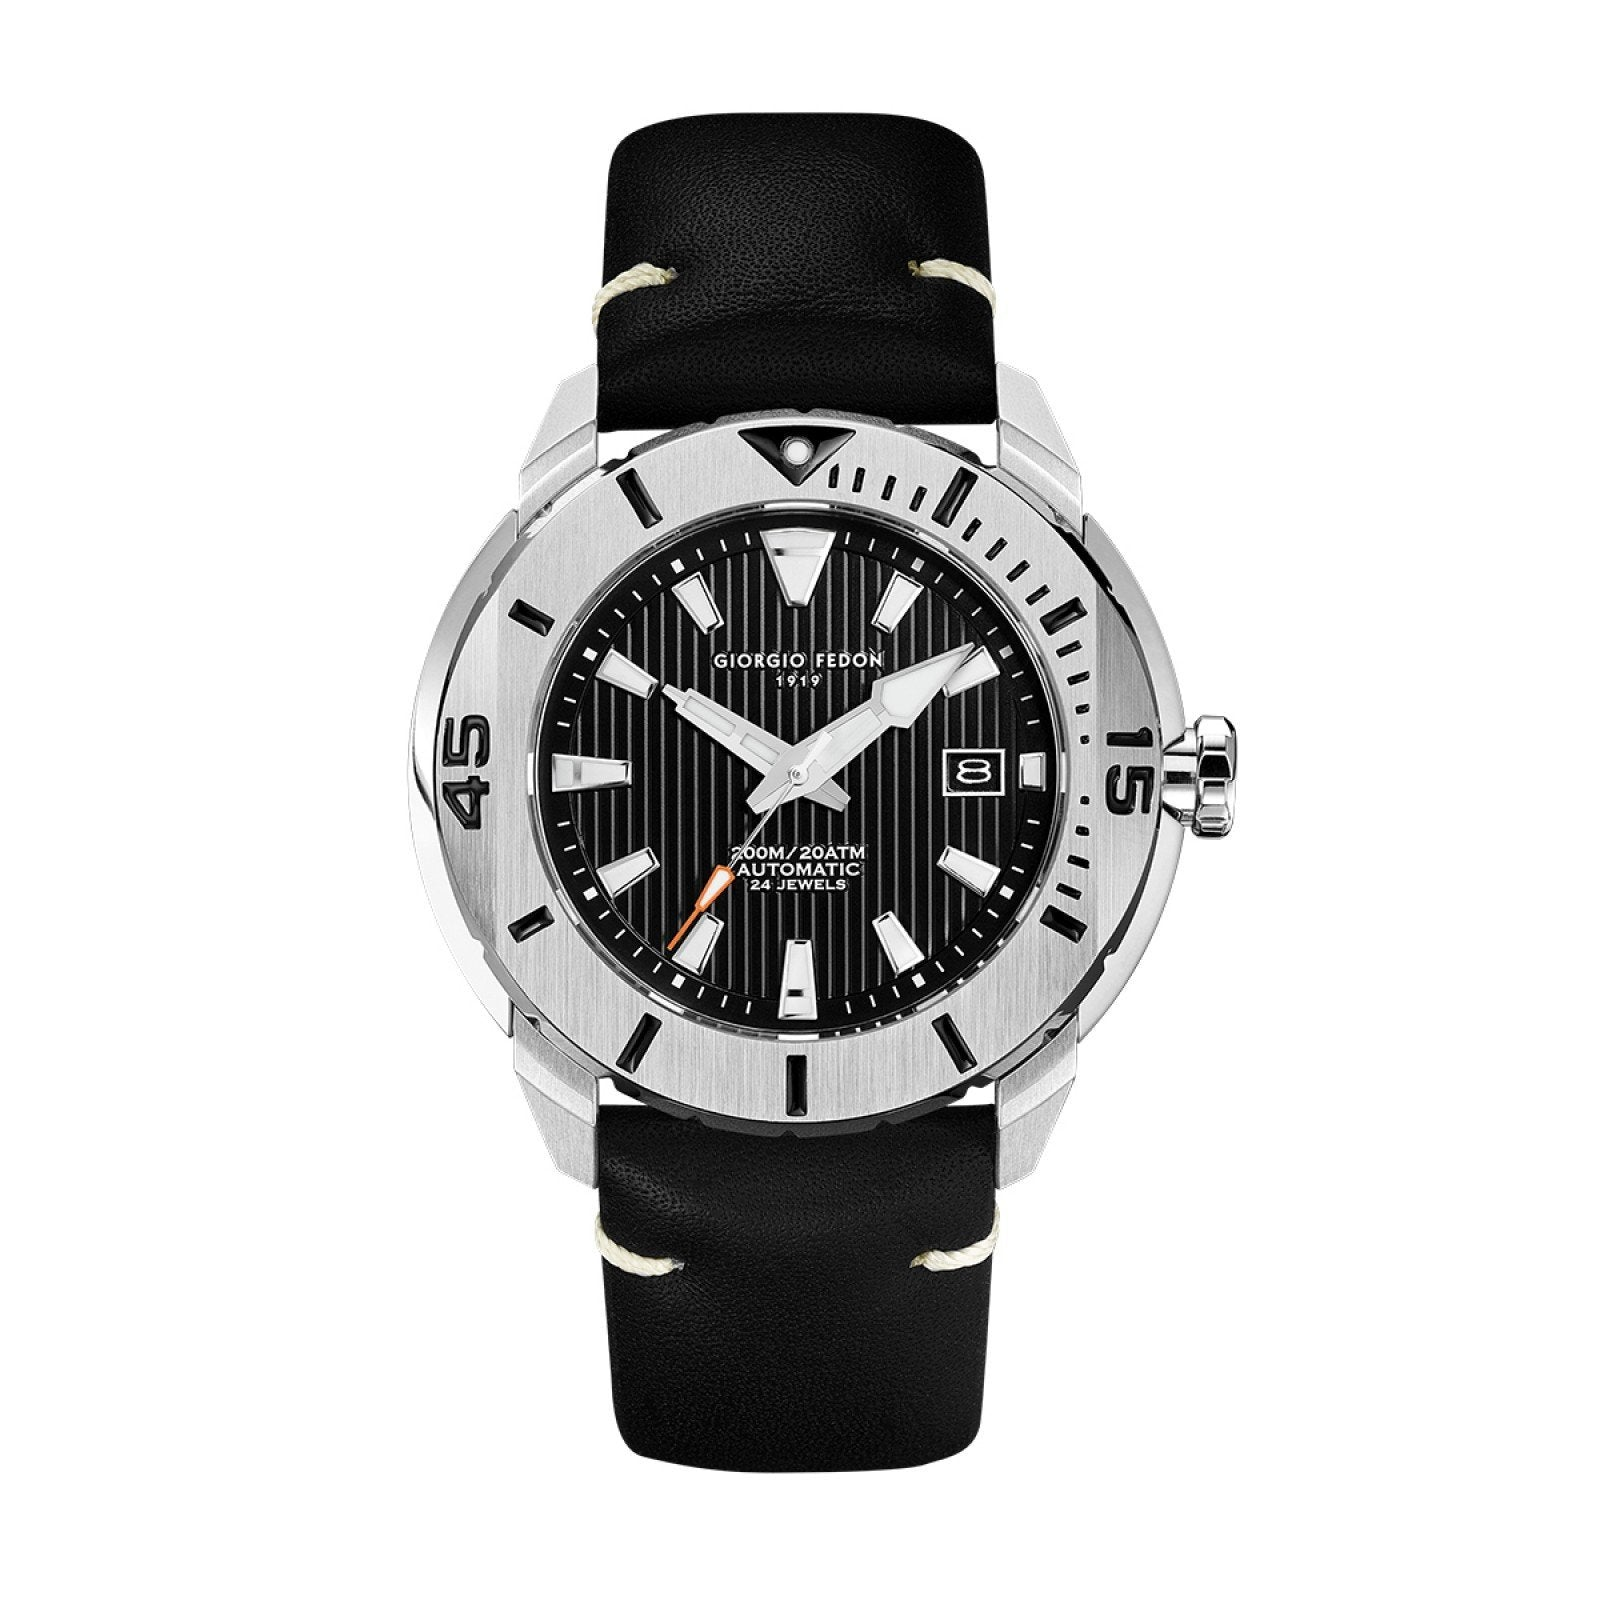 Giorgio Fedon Ocean Hover Black - Watches & Crystals